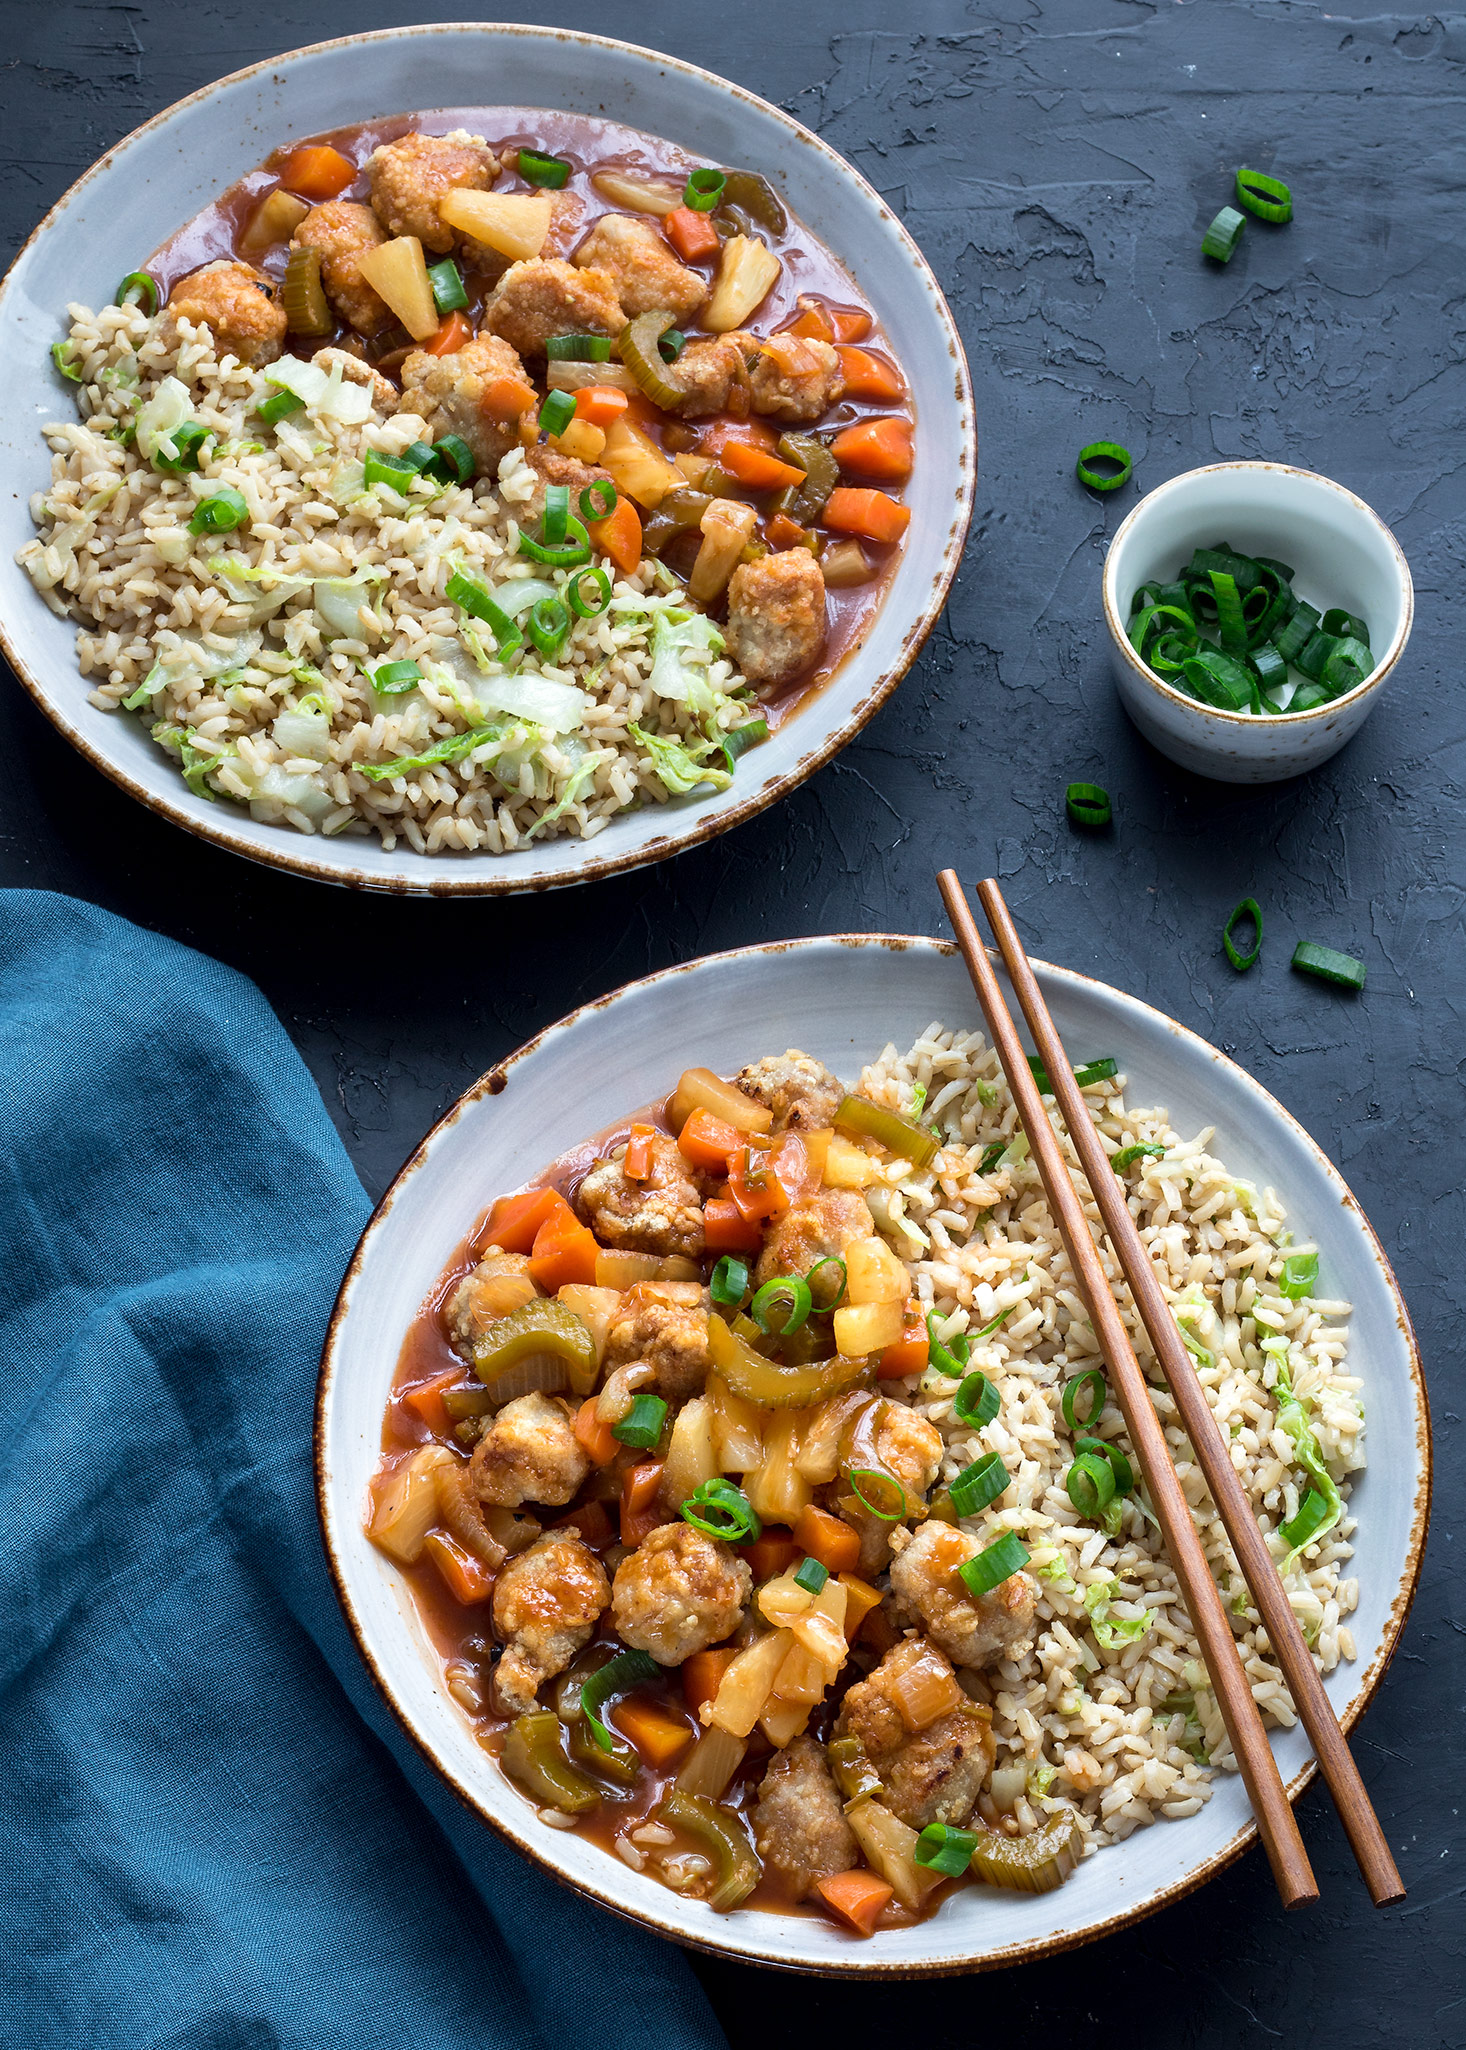 Sweet and sour pork is our usual pick when we go for a Chinese takeaway. 